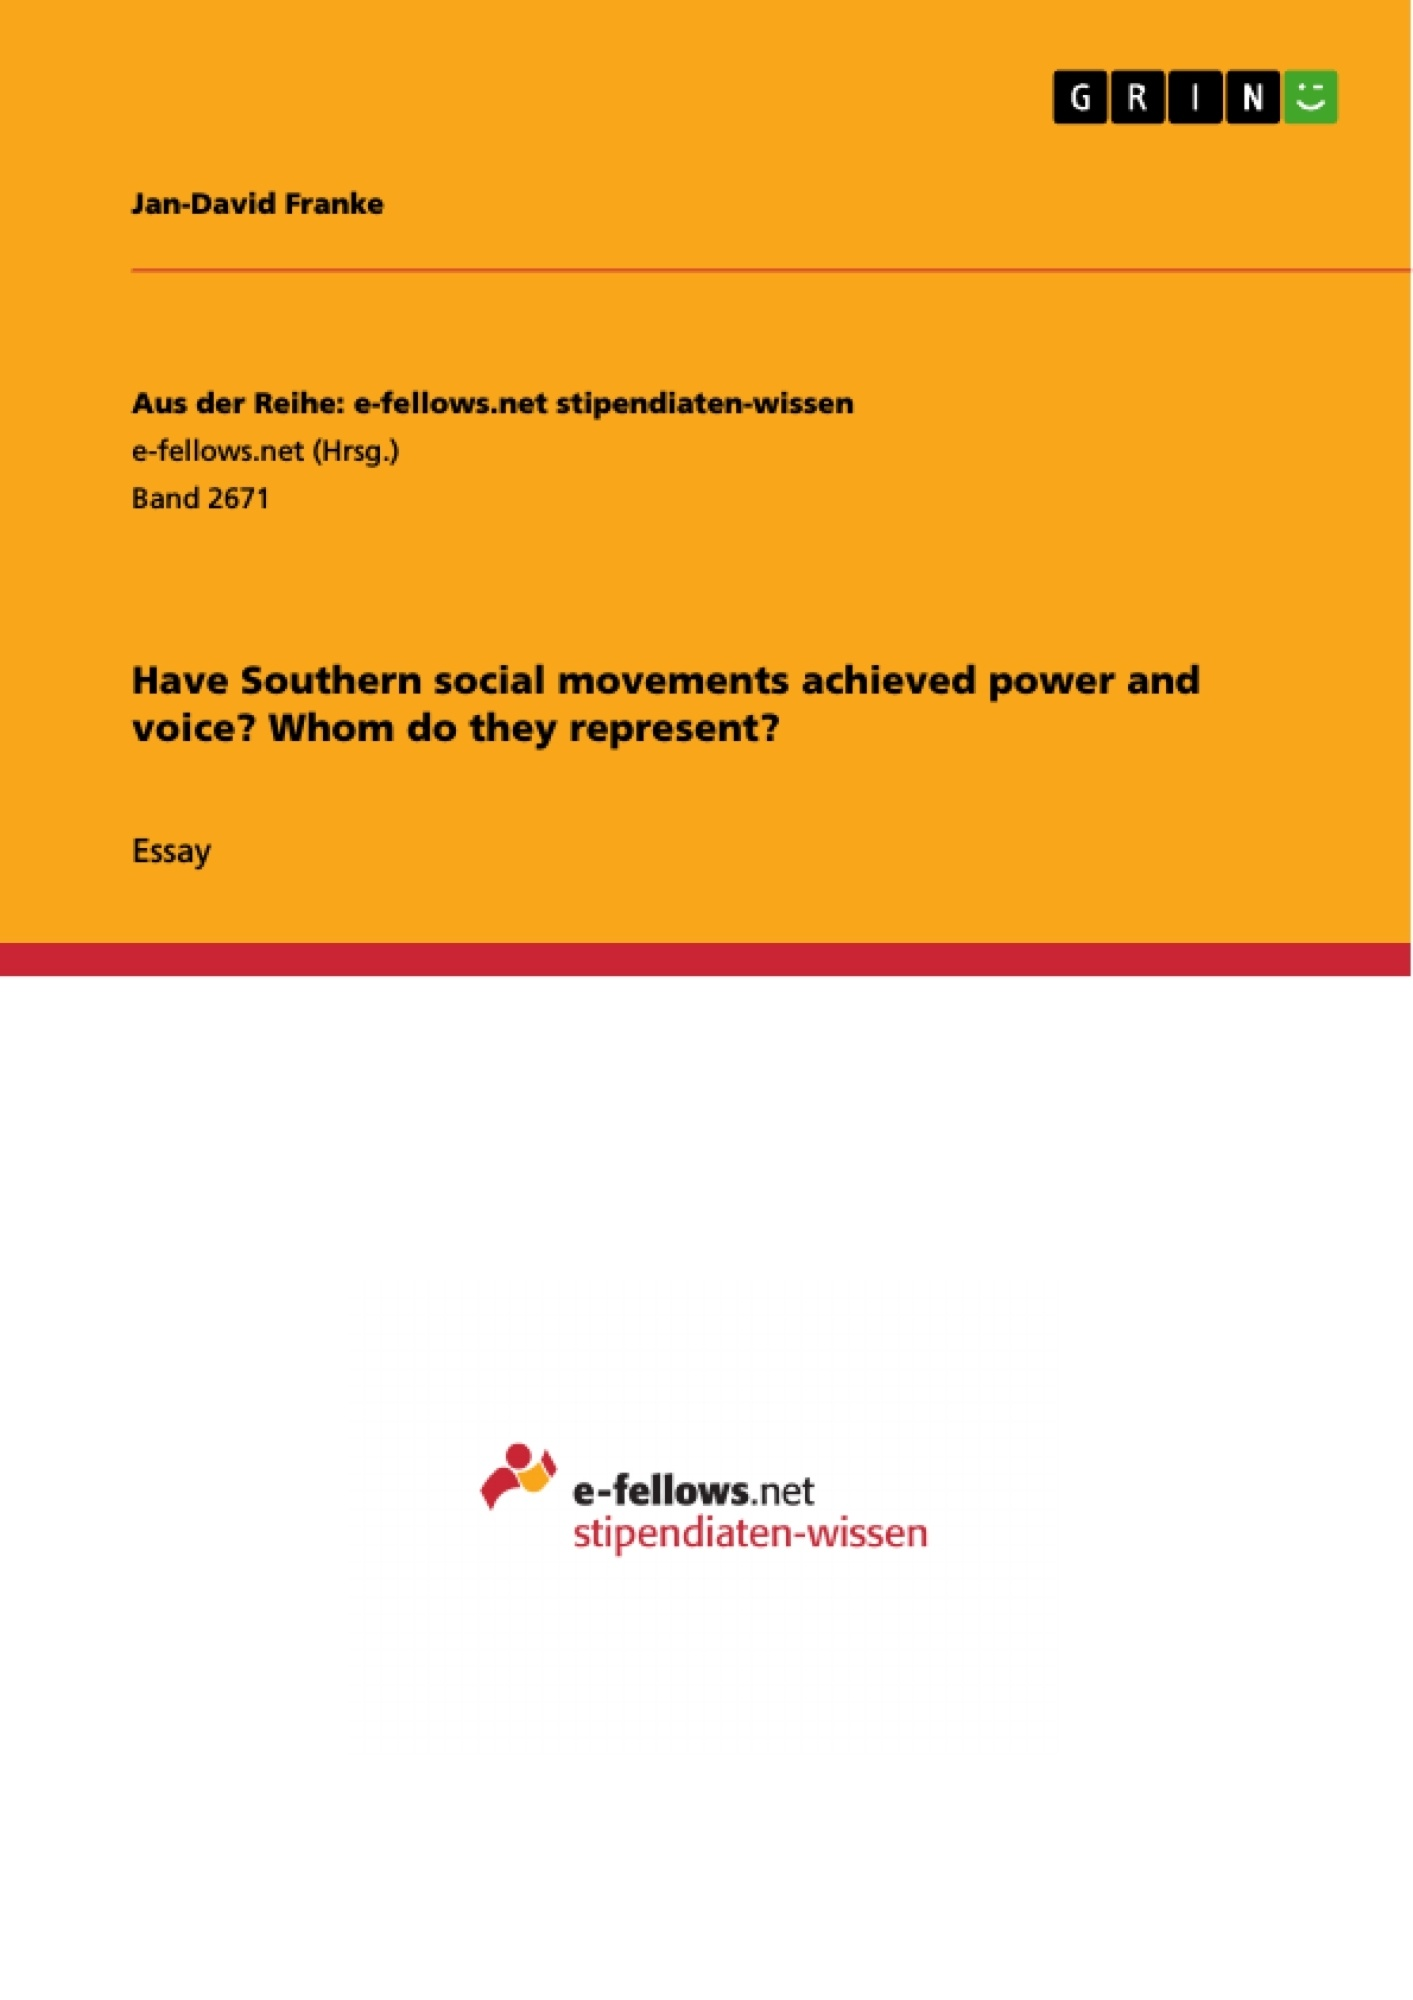 Title: Have Southern social movements achieved power and voice? Whom do they represent?